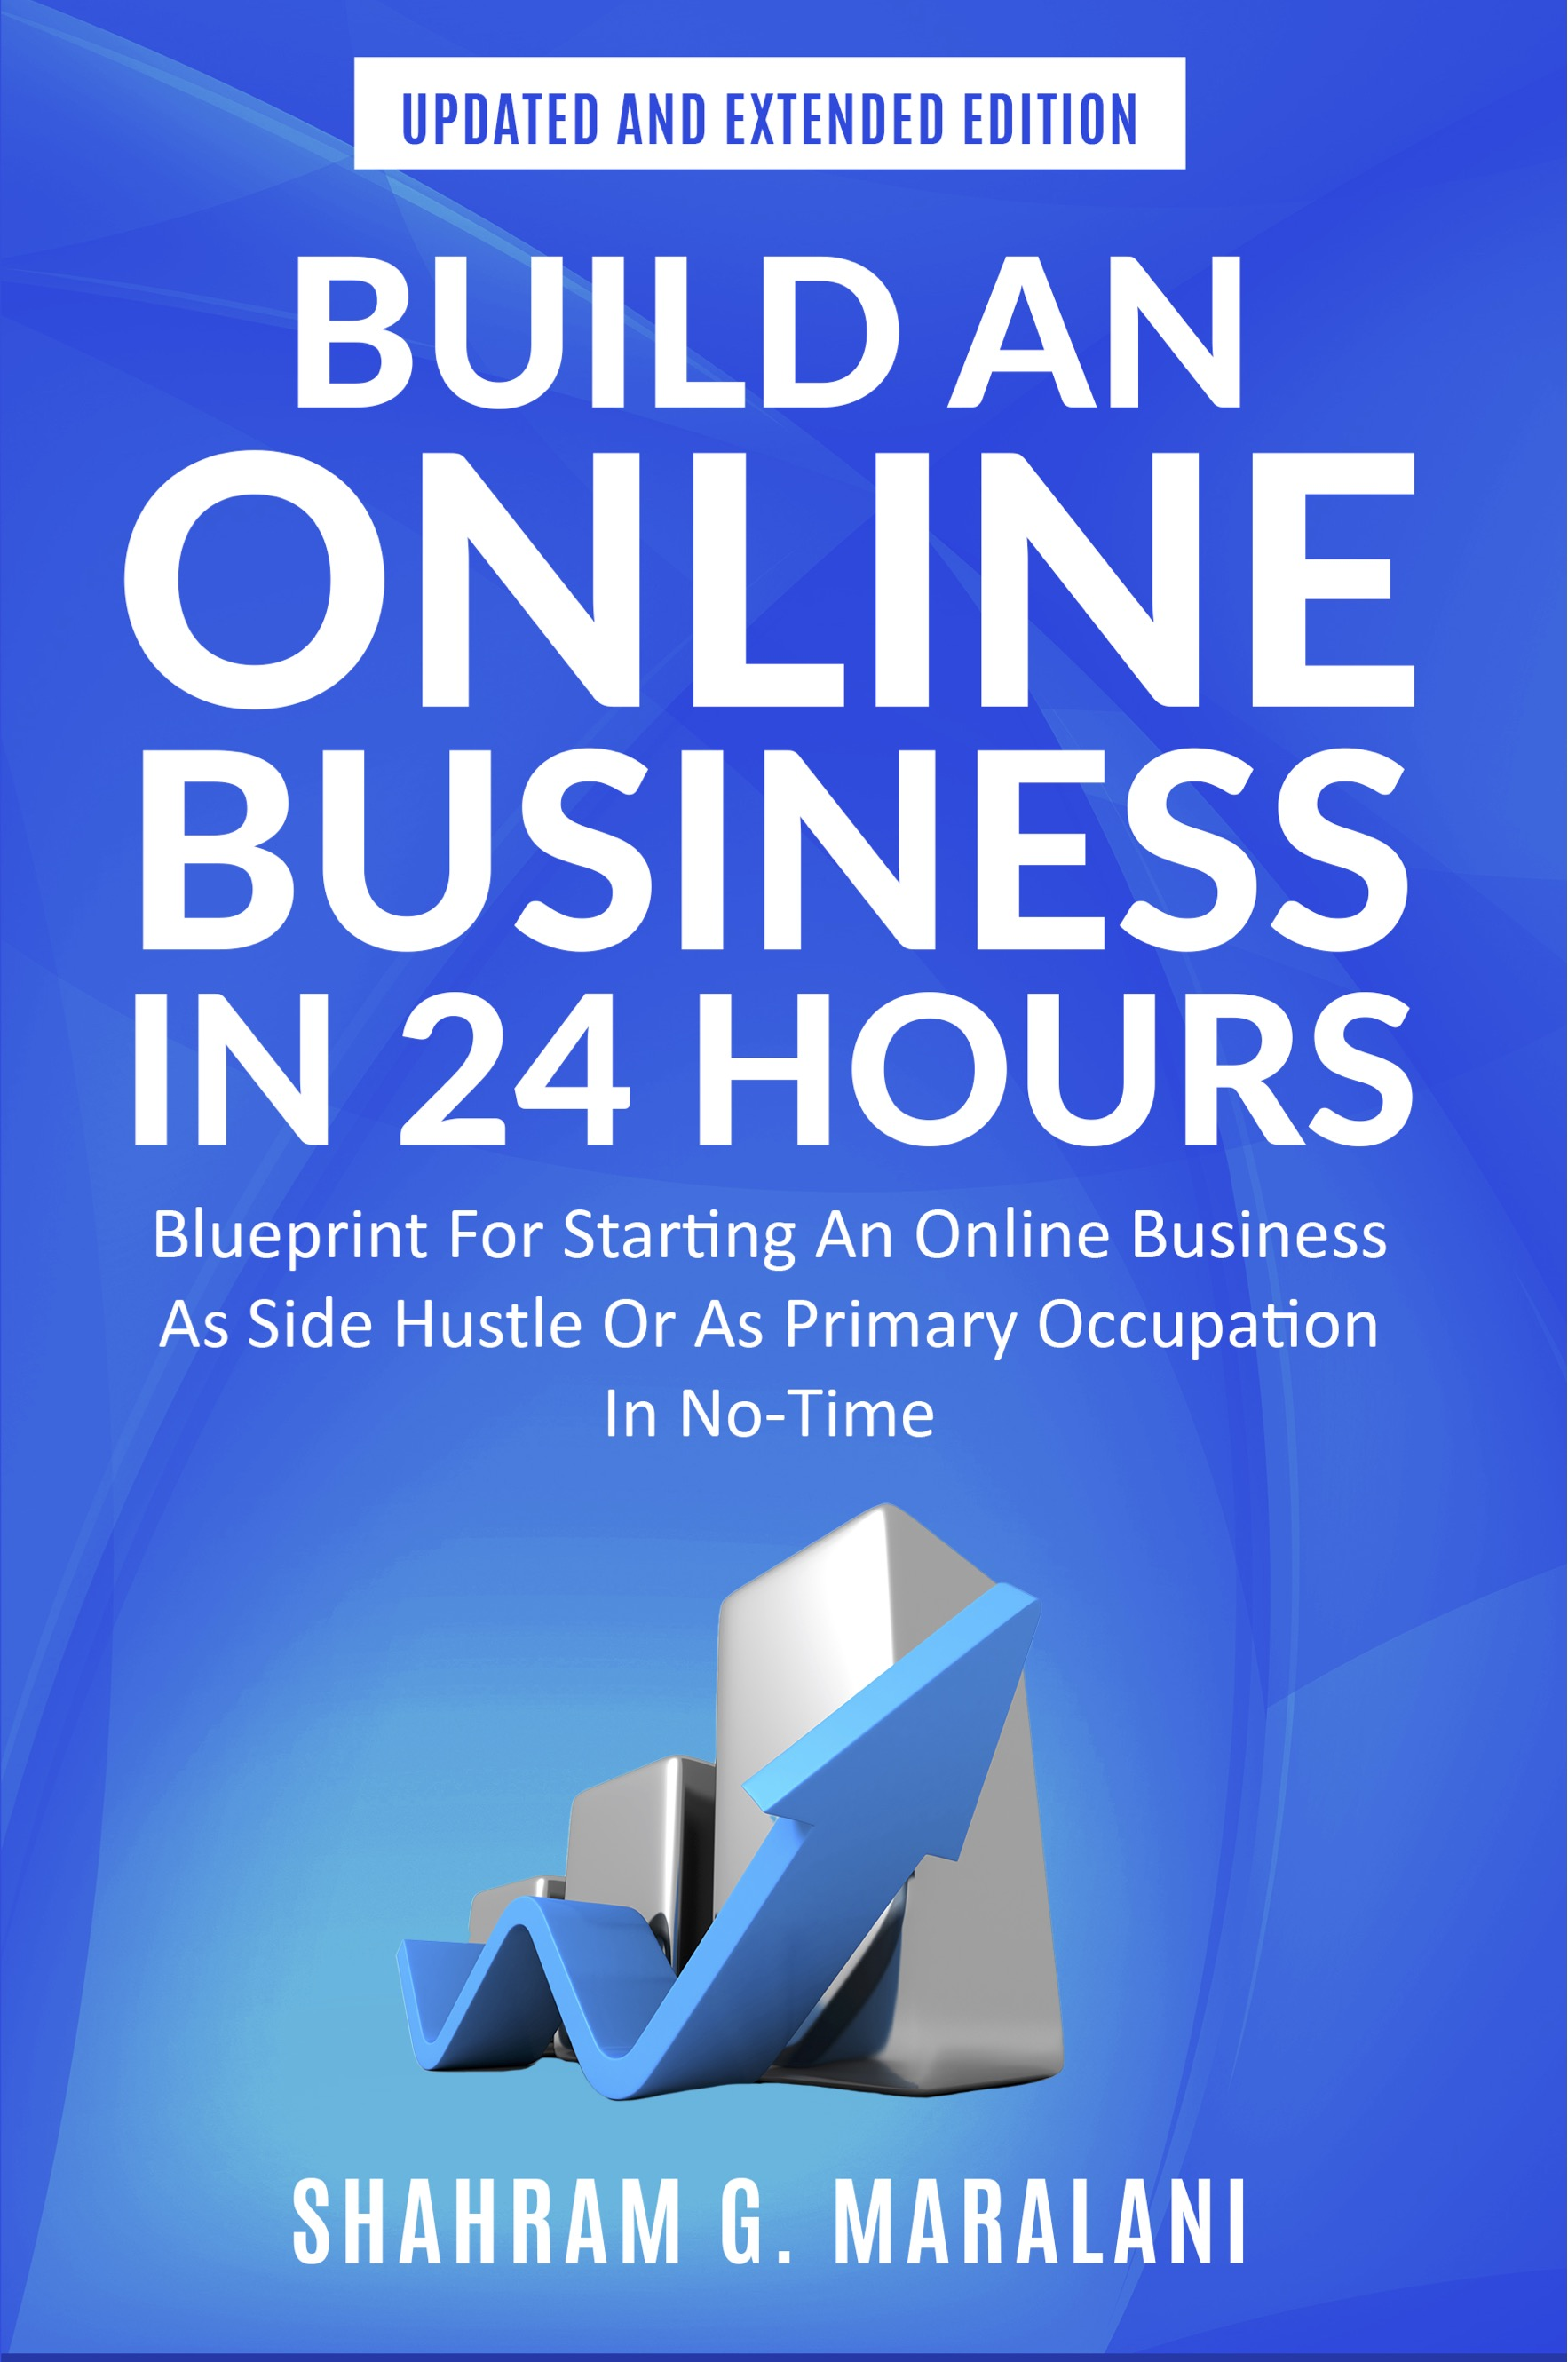 Build An Online Business in 24 Hours